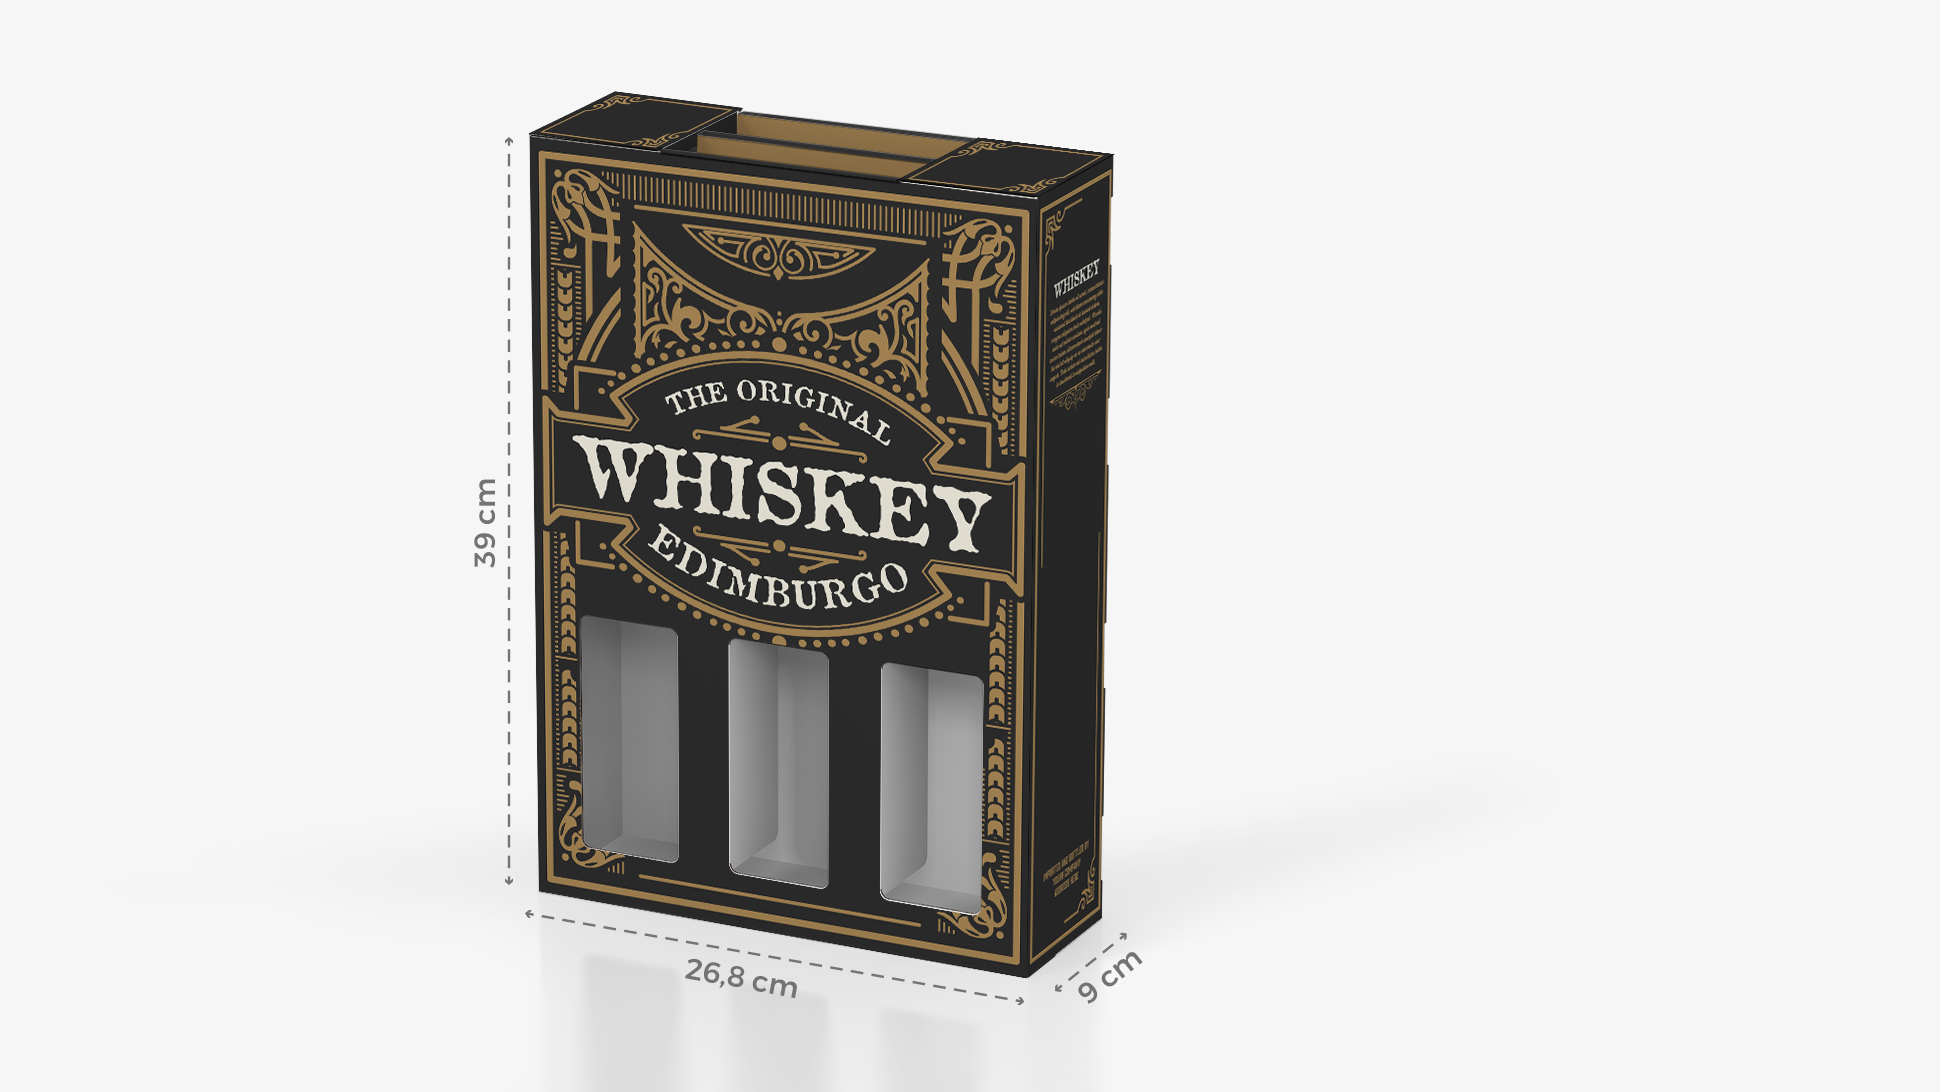 Portabottiglie in cartone 26,8x39 cm con grafica whiskey | tictac.it